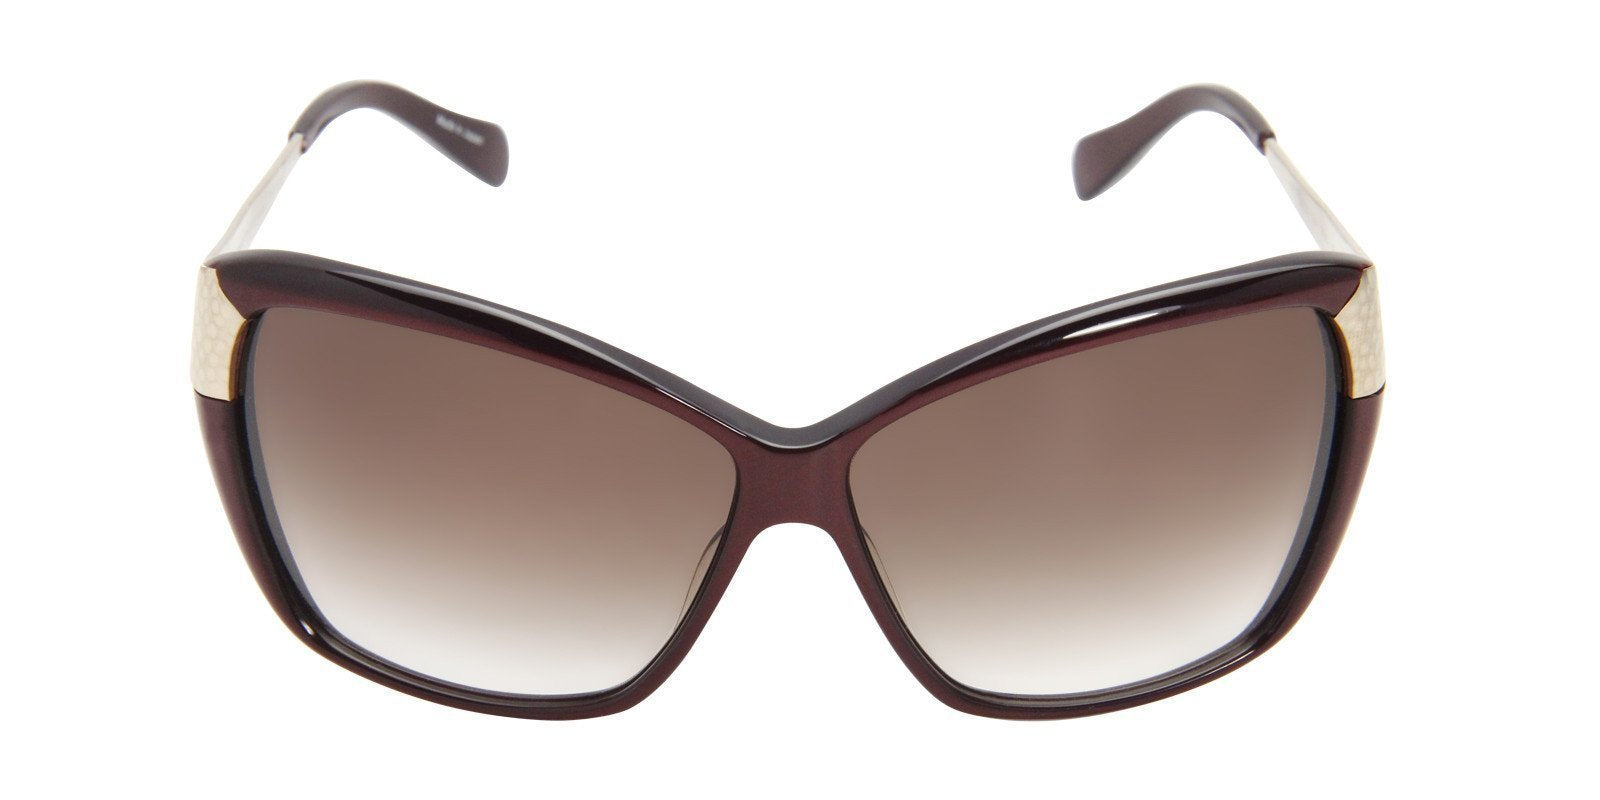 Oliver Peoples - Skyla Red Butterfly Women Sunglasses - 62mm-Sunglasses-Designer Eyes